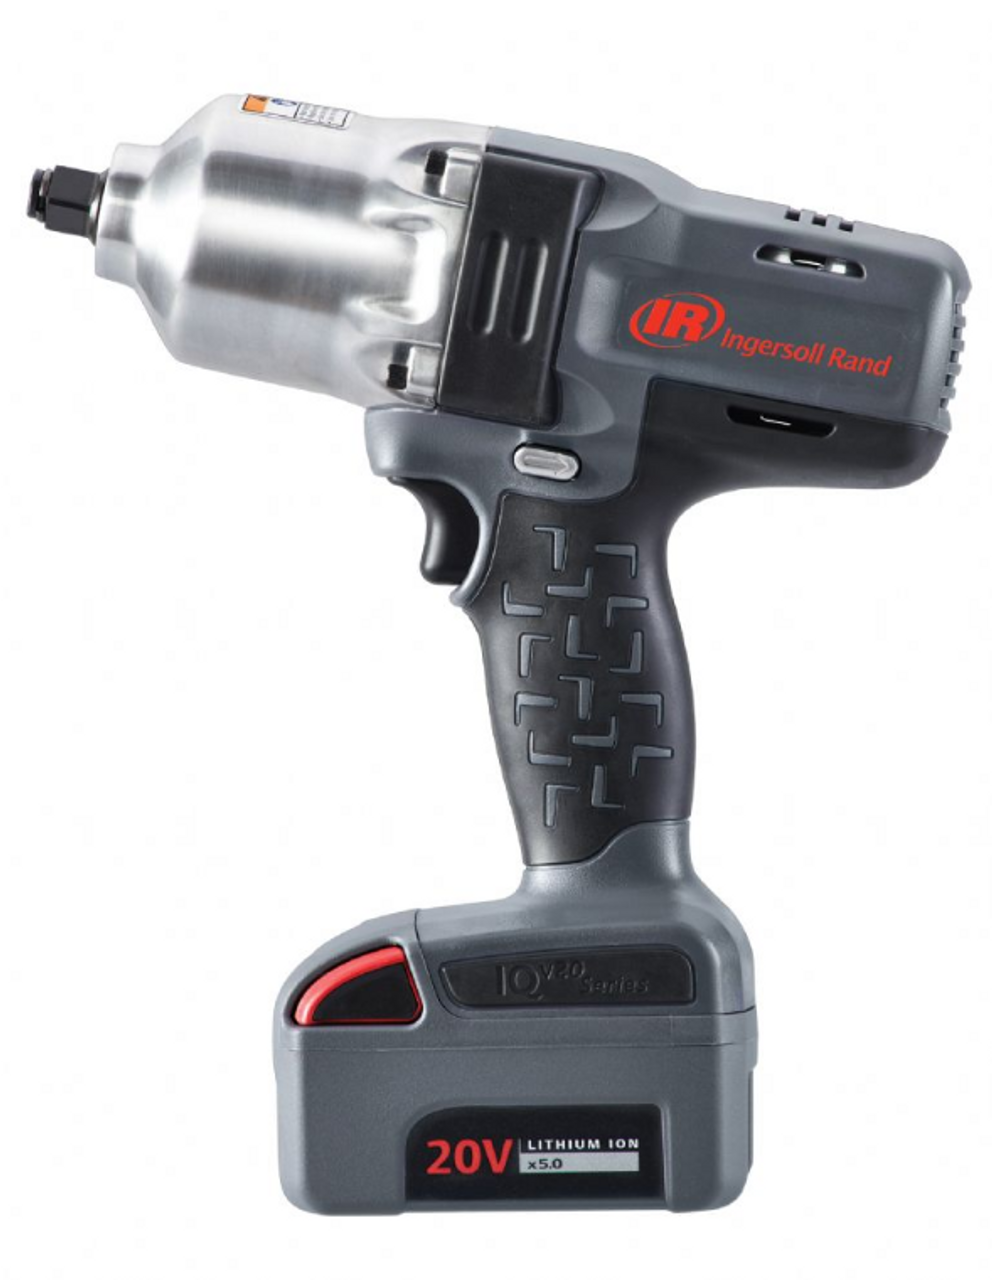 1 2 Cordless Impact >> Ingersoll Rand W7150 Cordless Impact Wrench 1 2 Drive 780 Ft Lbs Bare Tool Only